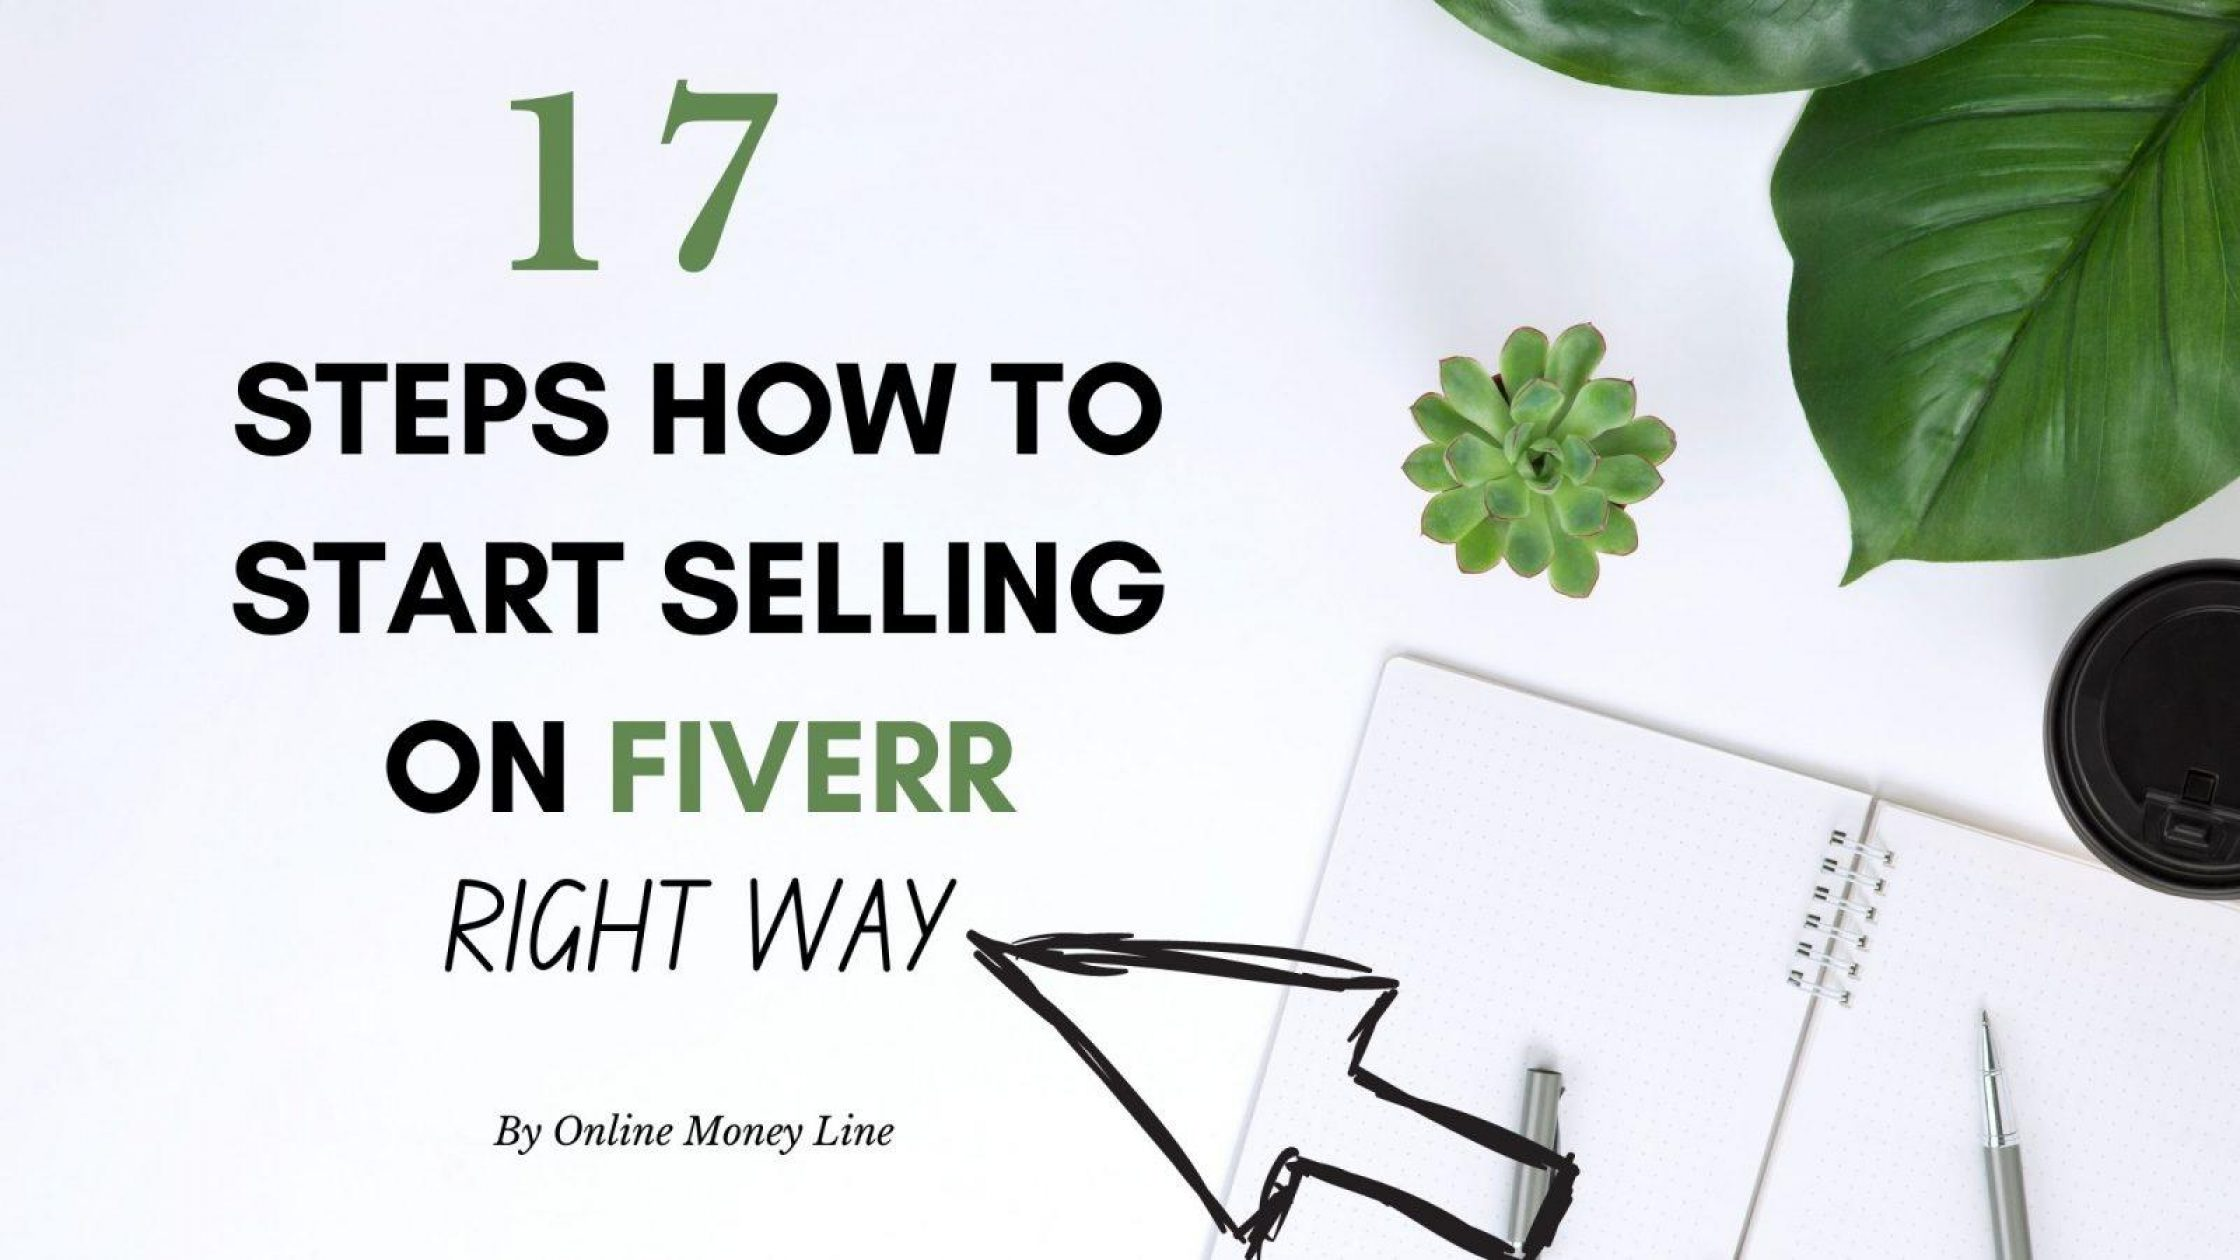 25 Steps How to Start Selling on Fiverr [Guaranteed]